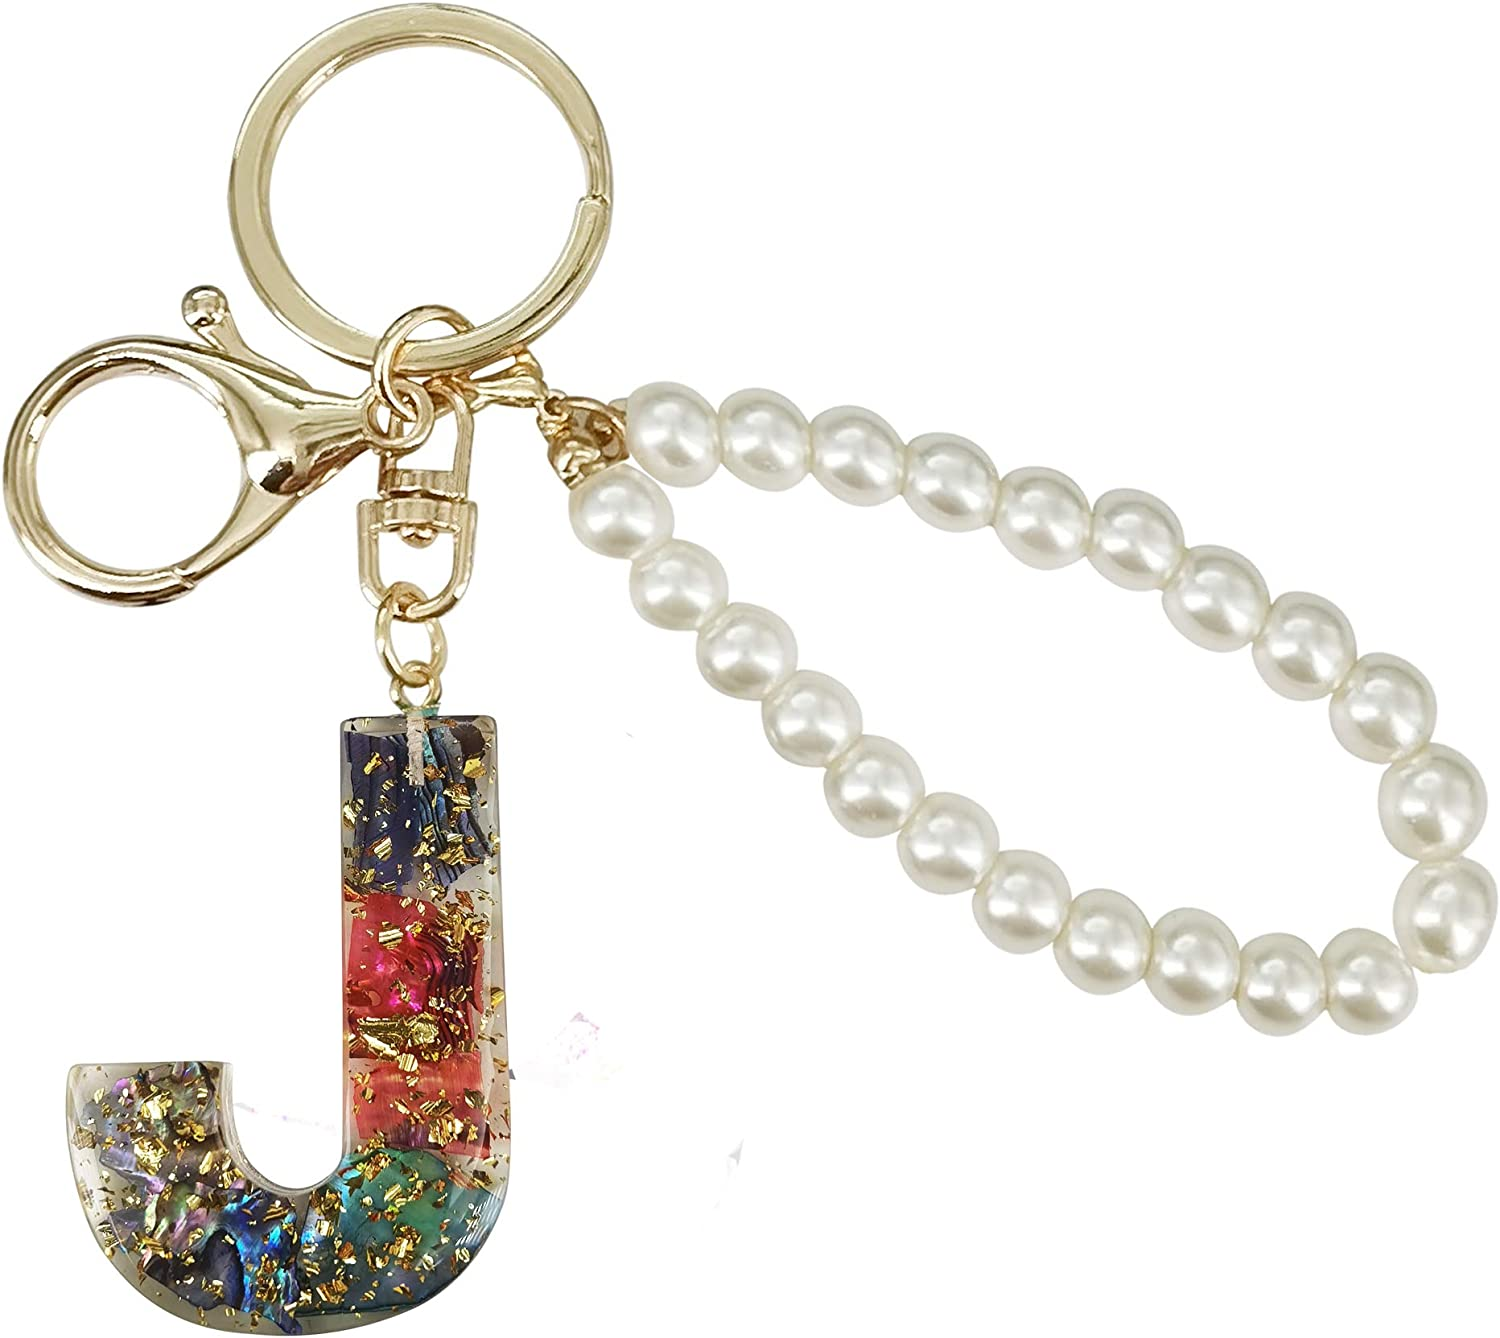 SELOVO Shinning Multicolor Initial Key Chain Capital Letter Alphabet Simulated Pearl Chain Keyring